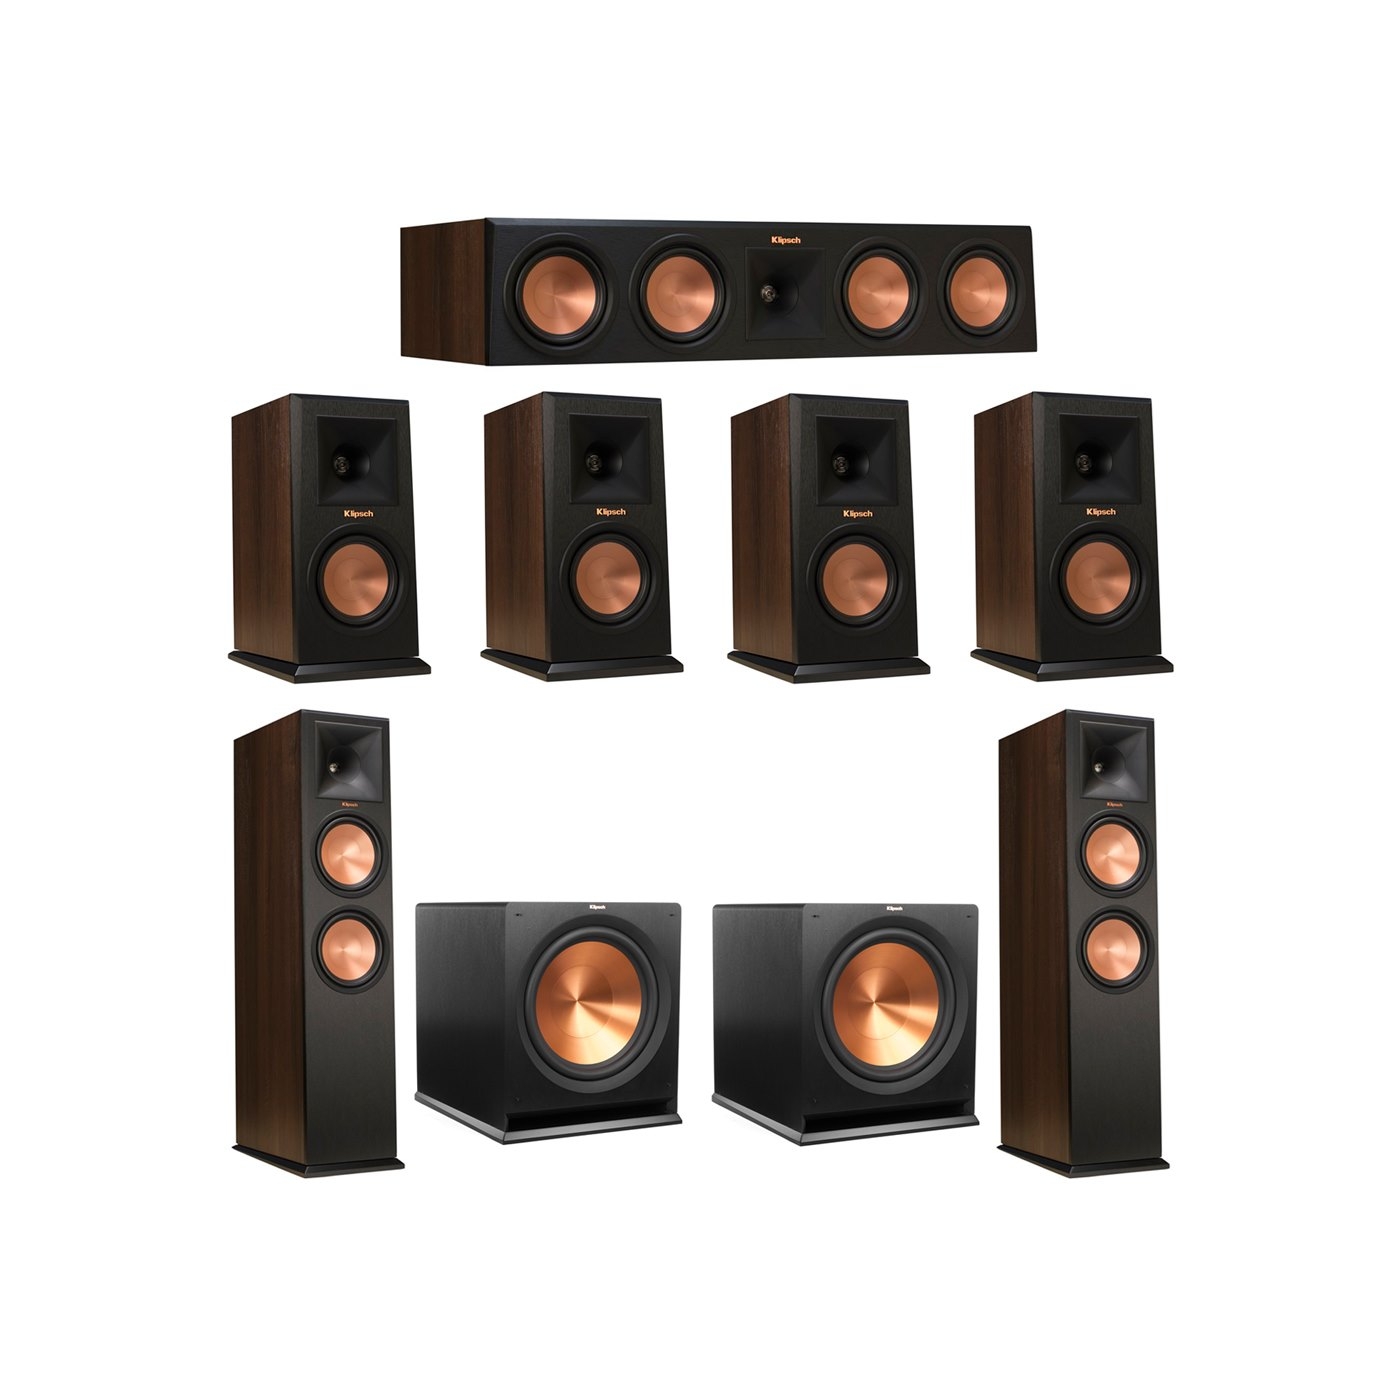 Klipsch 7.2 Walnut System with 2 RP-280F Tower Speakers, 1 RP-450C Center Speaker, 4 Klipsch RP-150M Bookshelf Speakers, 2 Klipsch R-115SW Subwoofer